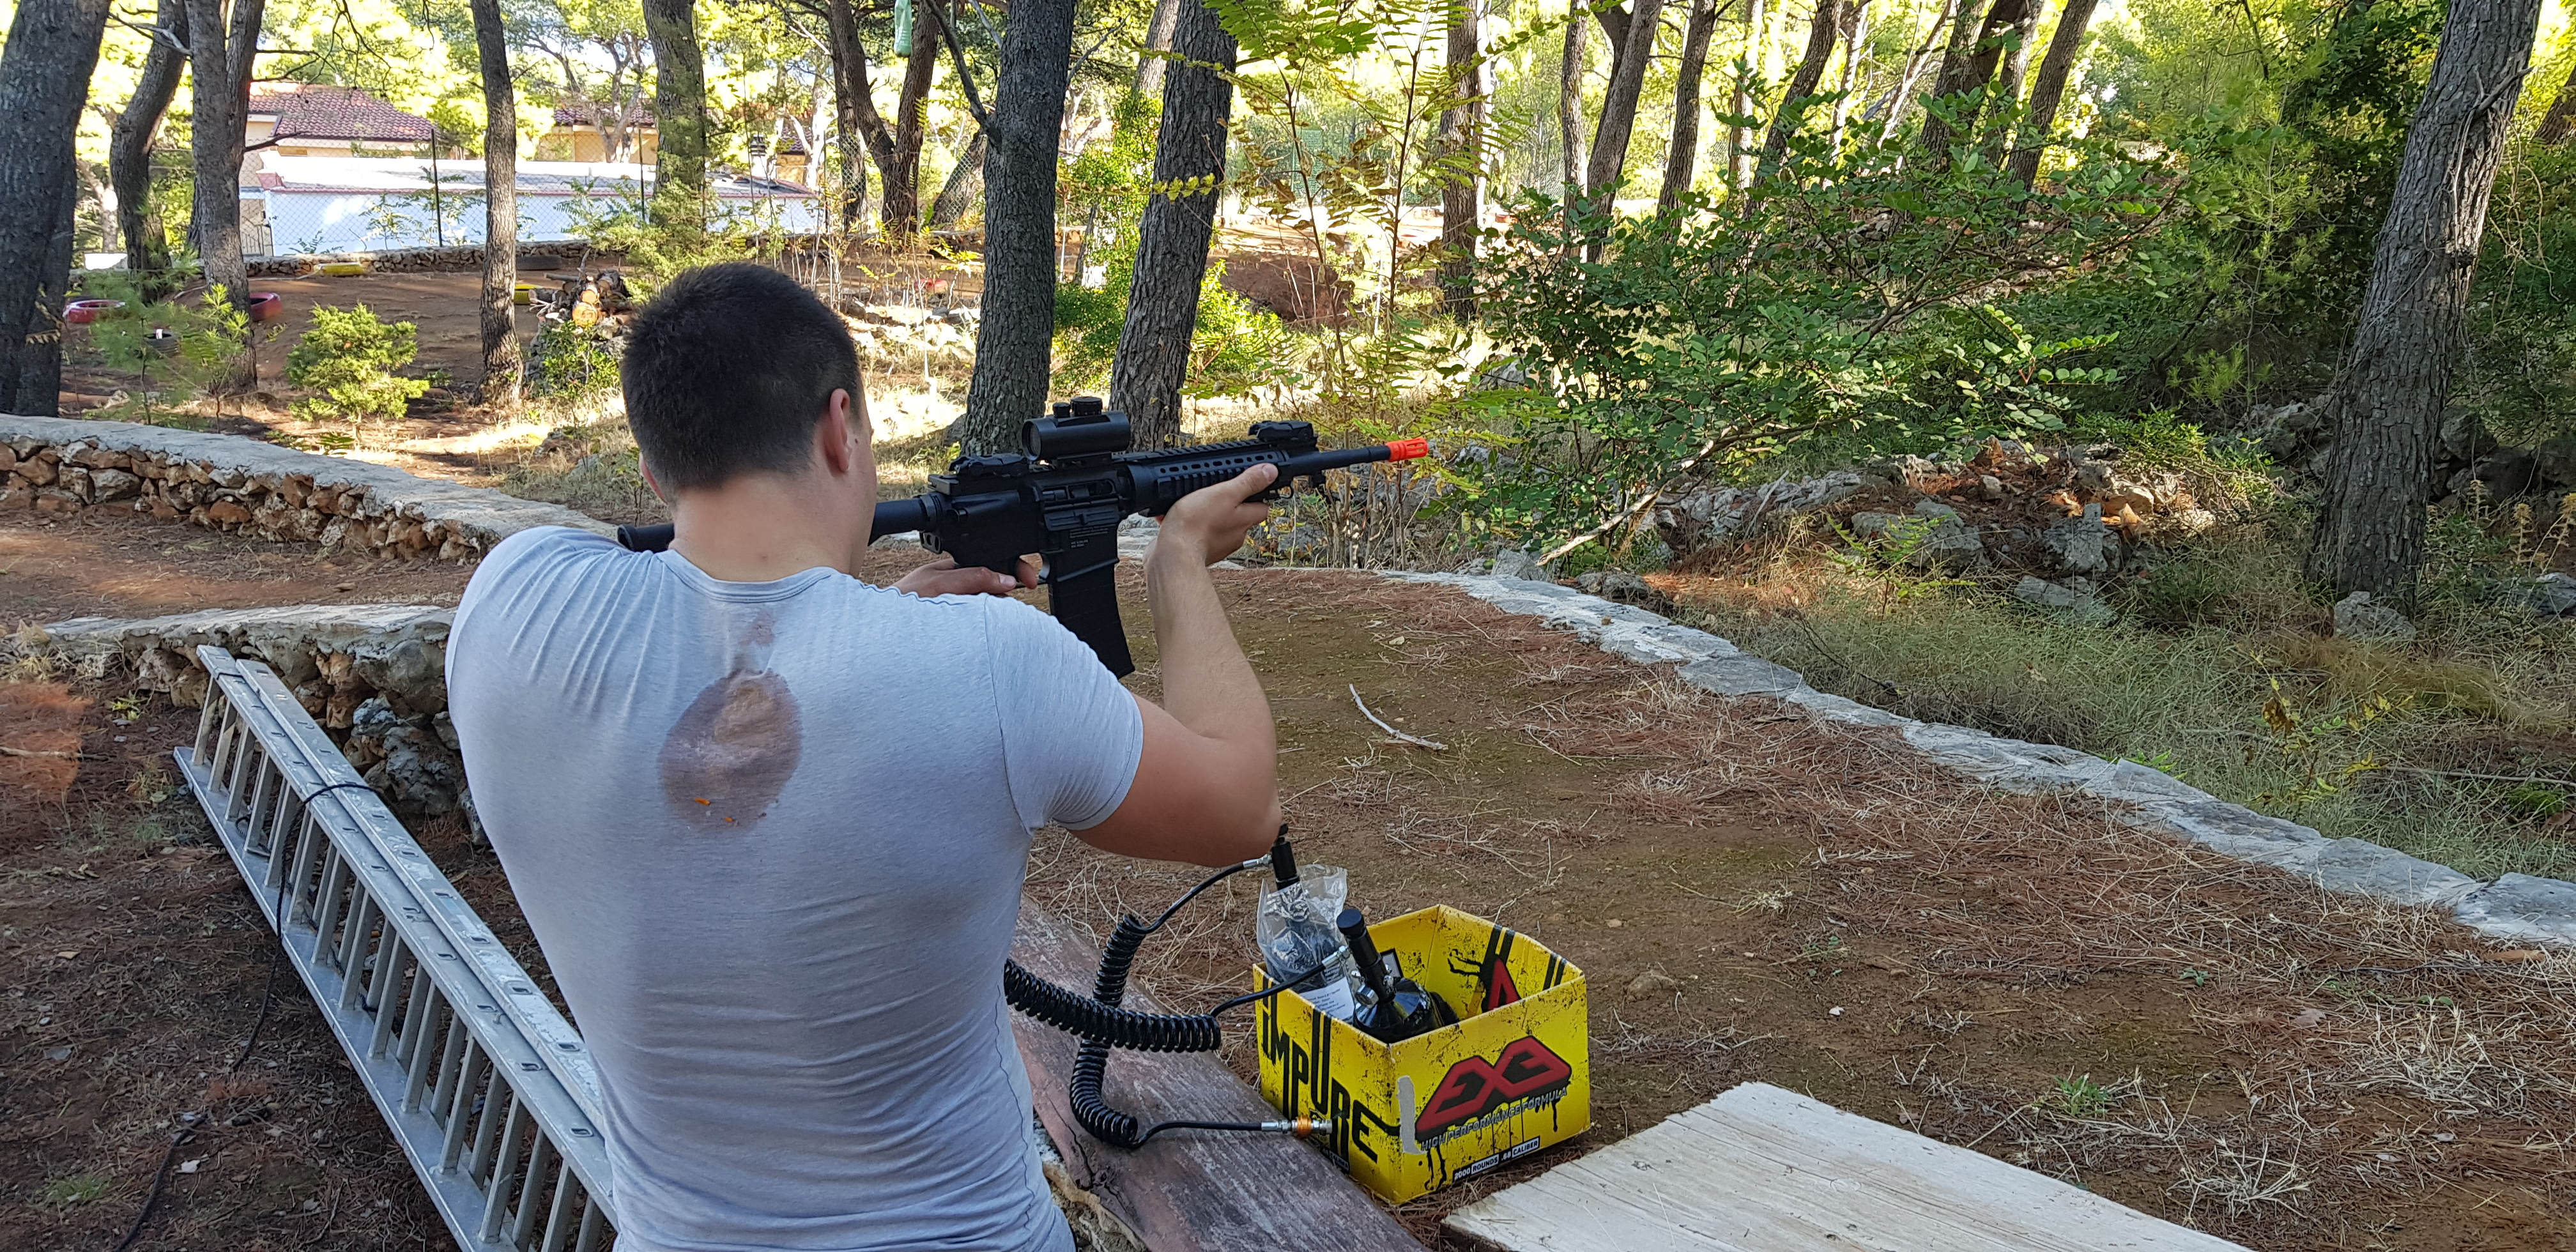 Airsoft duel Bachelor party Hvar